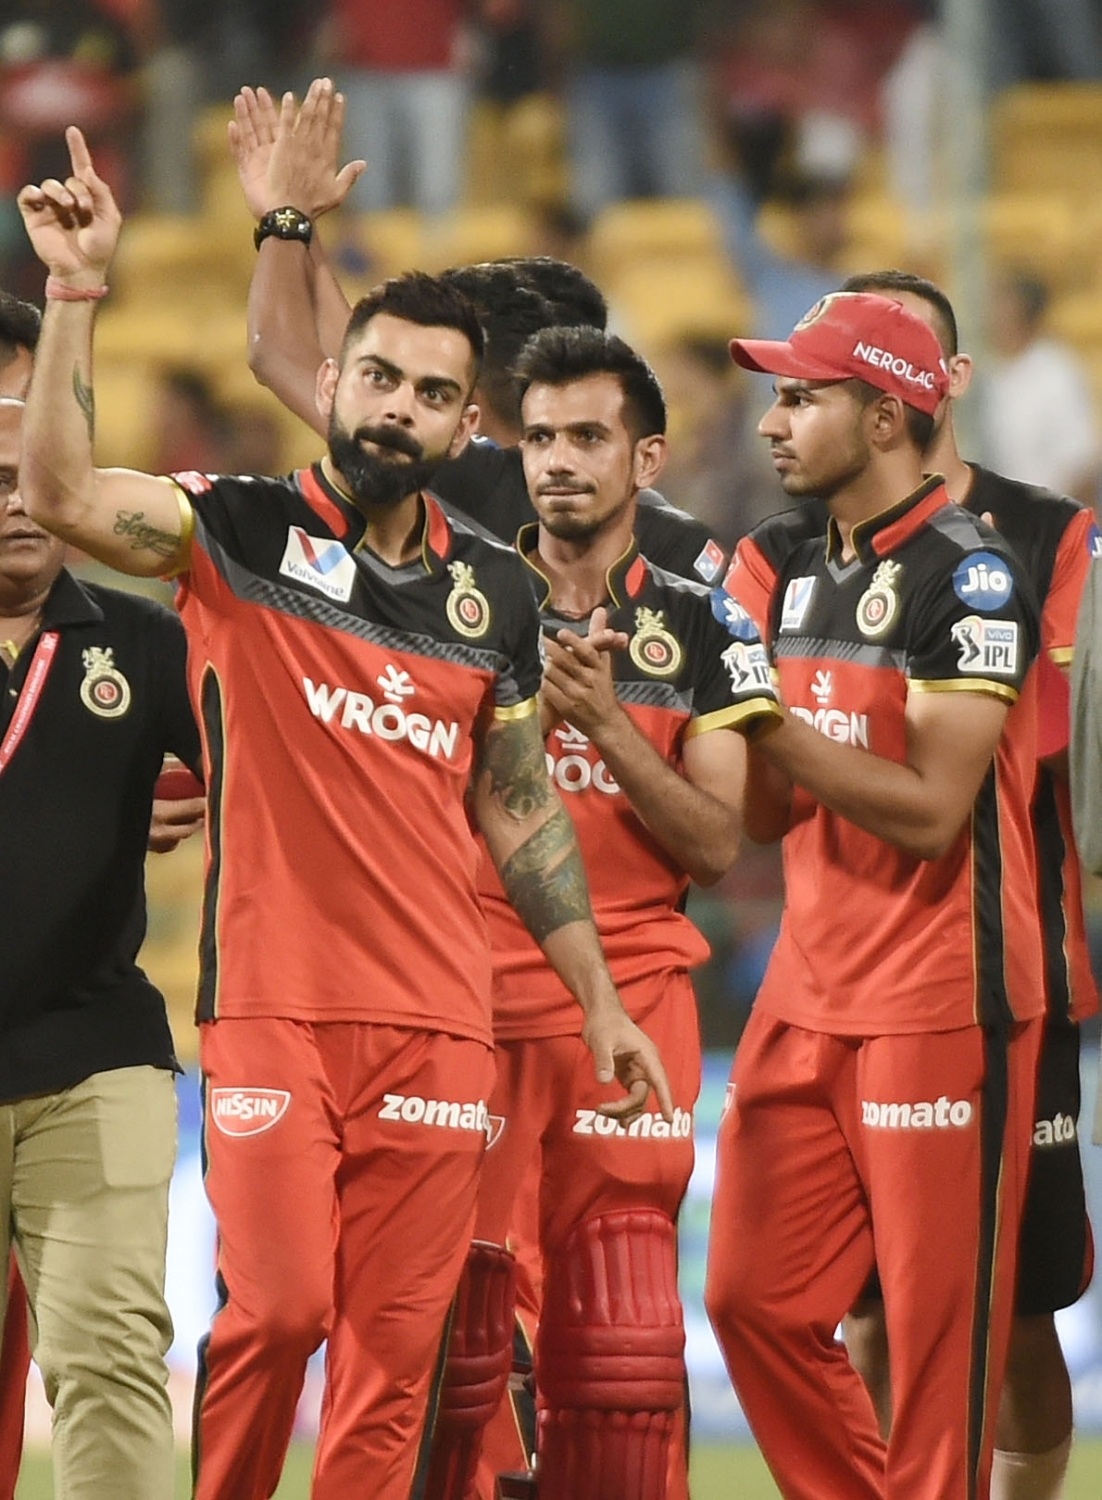 RCB have another terrible season as they finish at the bottom of the points table of IPL 2019 | IANS